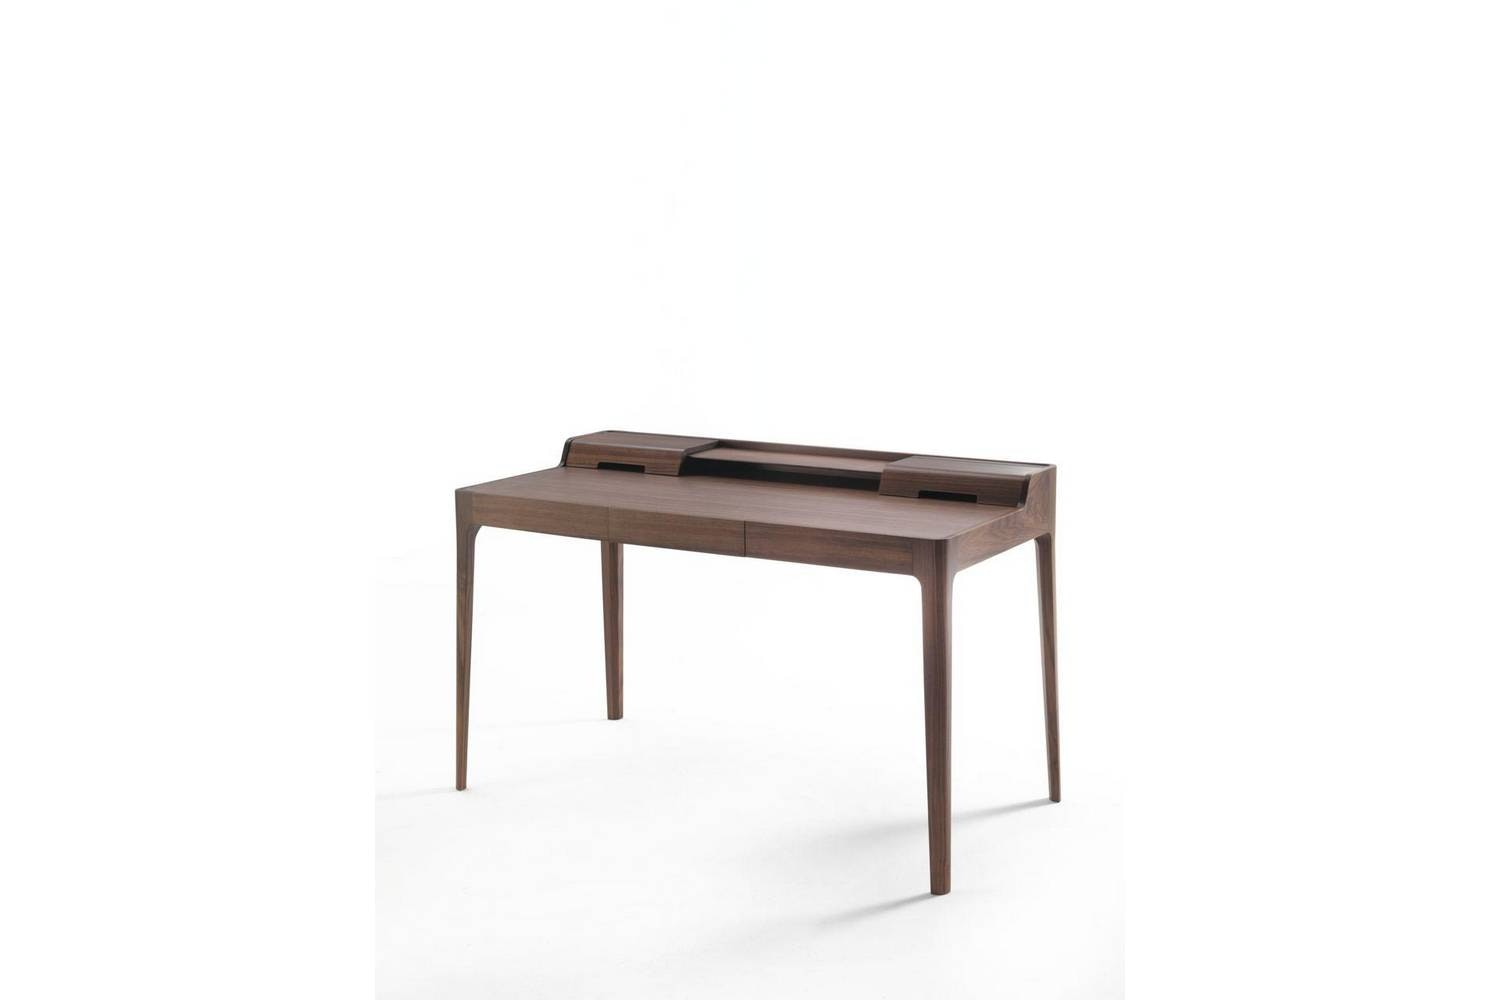 Saffo Writing Desk by C. Ballabio for Porada